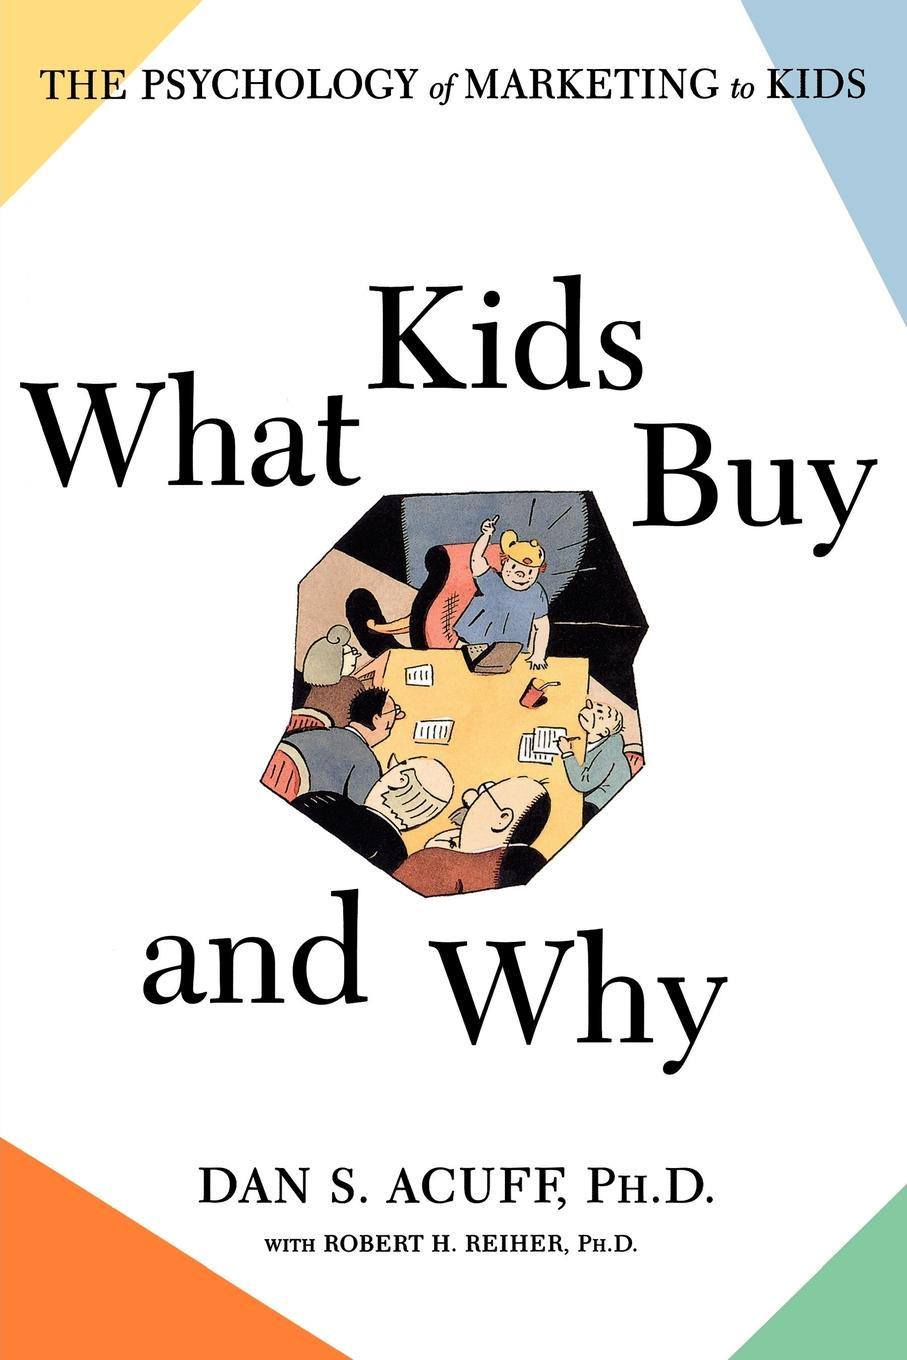 Dan S. Acuff What Kids Buy and Why. The Psychology of Marketing to